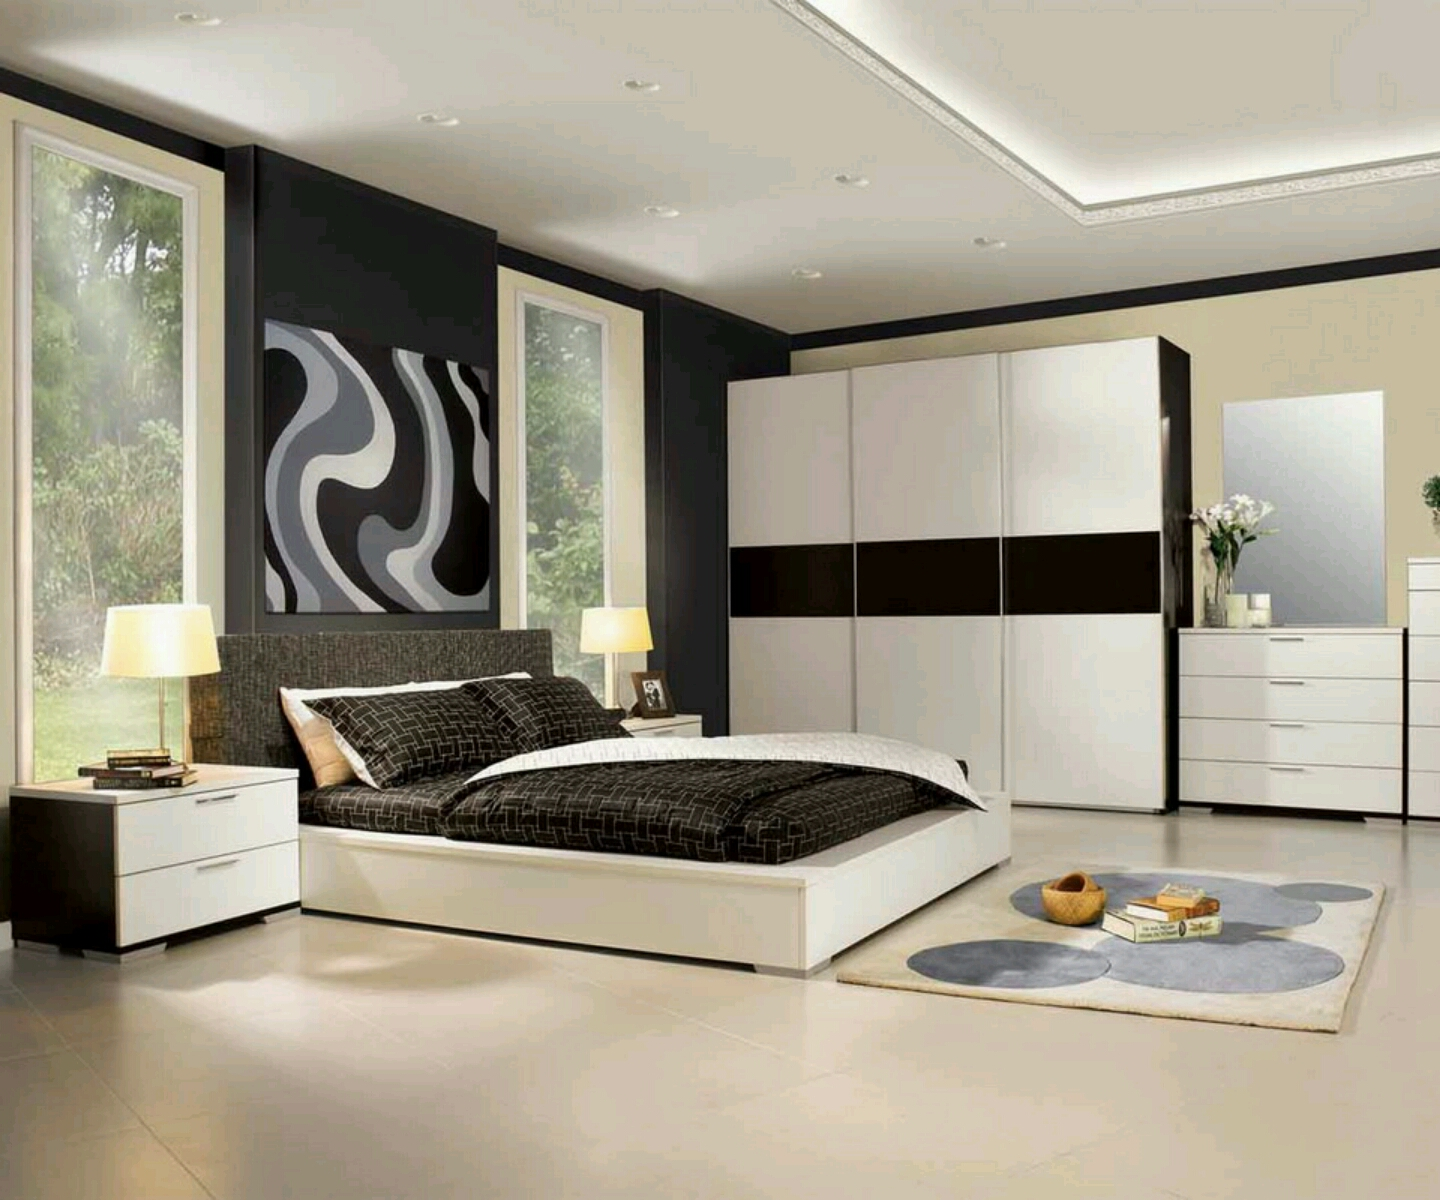 Best design home december 2012 for Bedroom furniture design